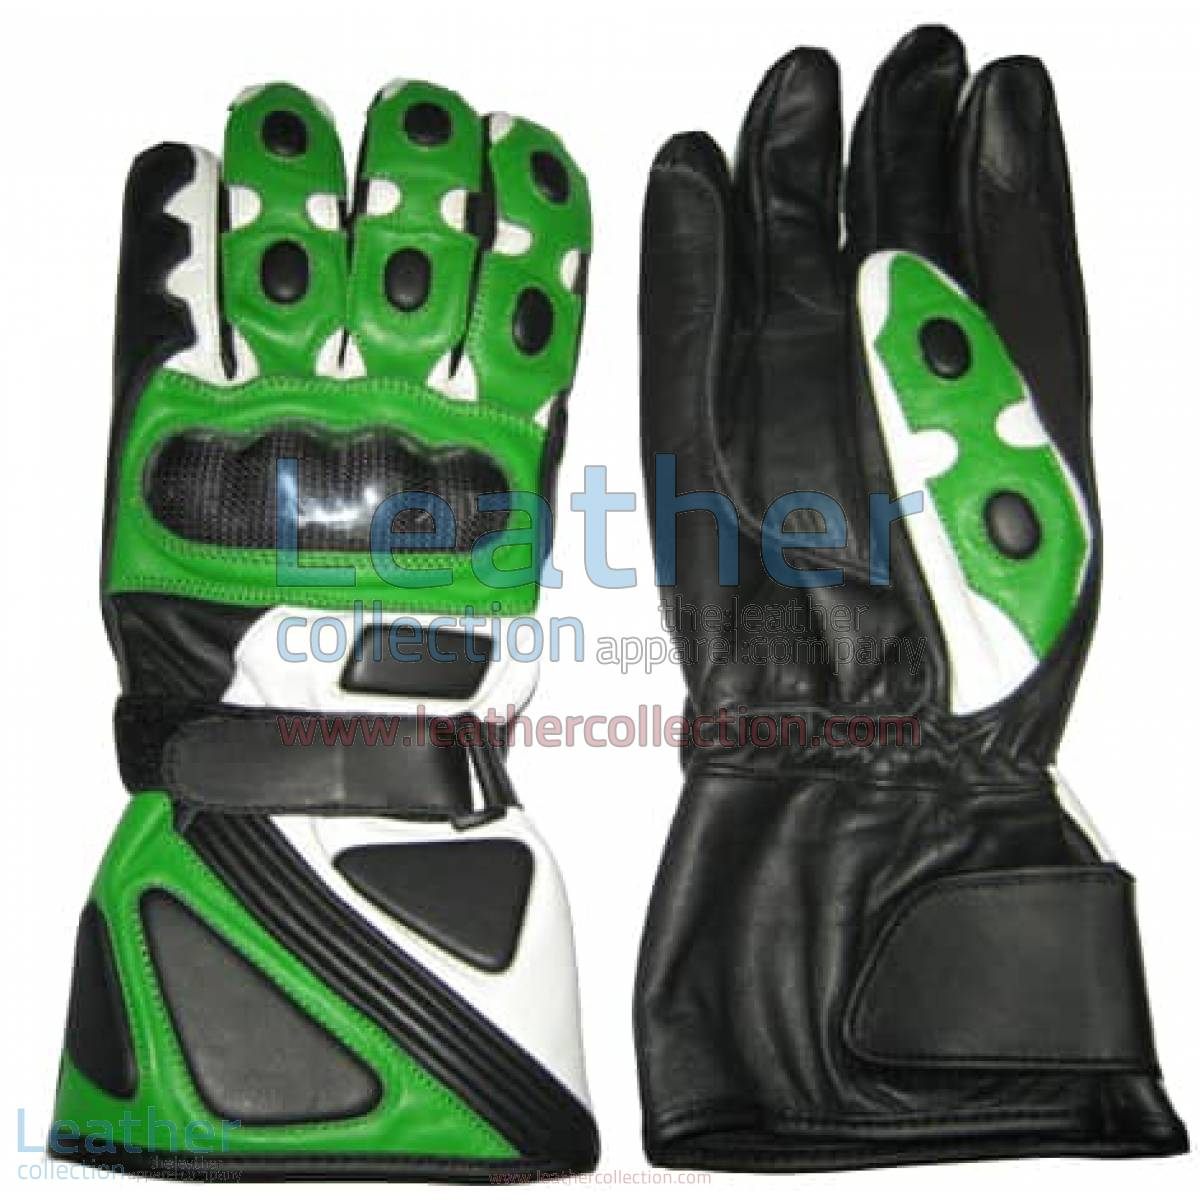 Bravo Green Motorcycle Race Gloves | race gloves,motorcycle race gloves